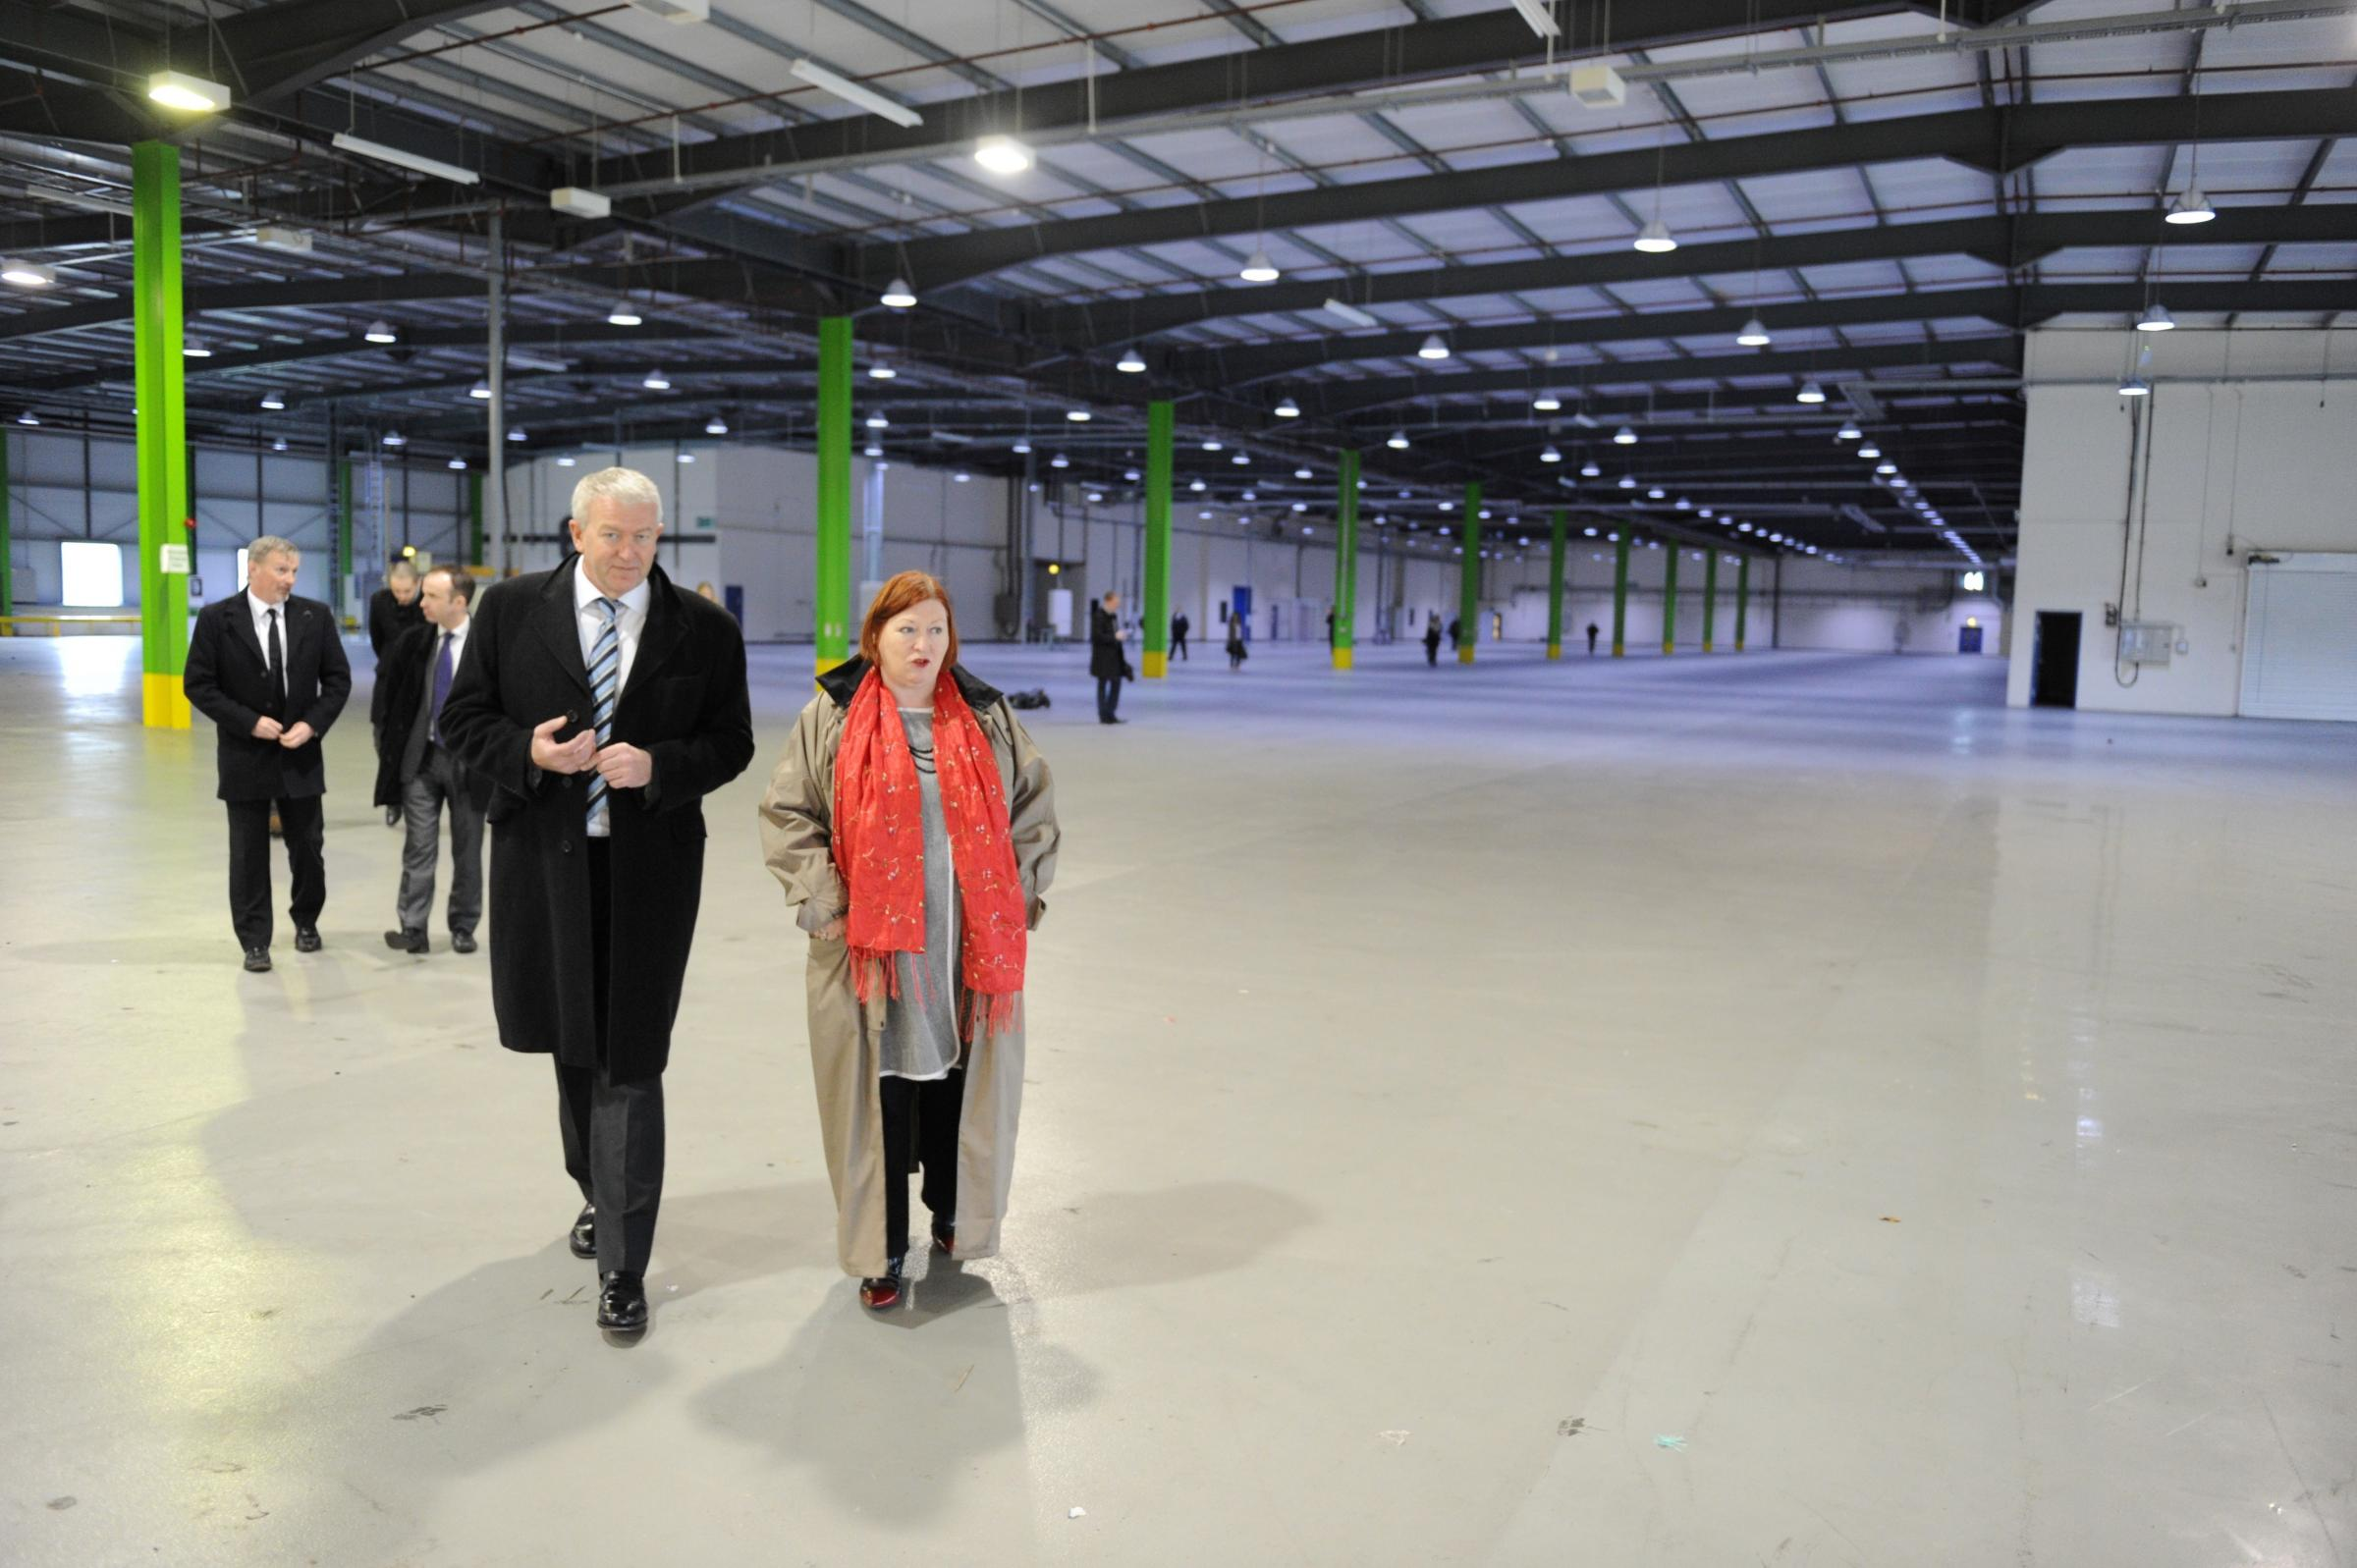 Minister Edwina Hart and Ivan Dunleavy of Pinewood Shepperton at the film studio site in Wentloog